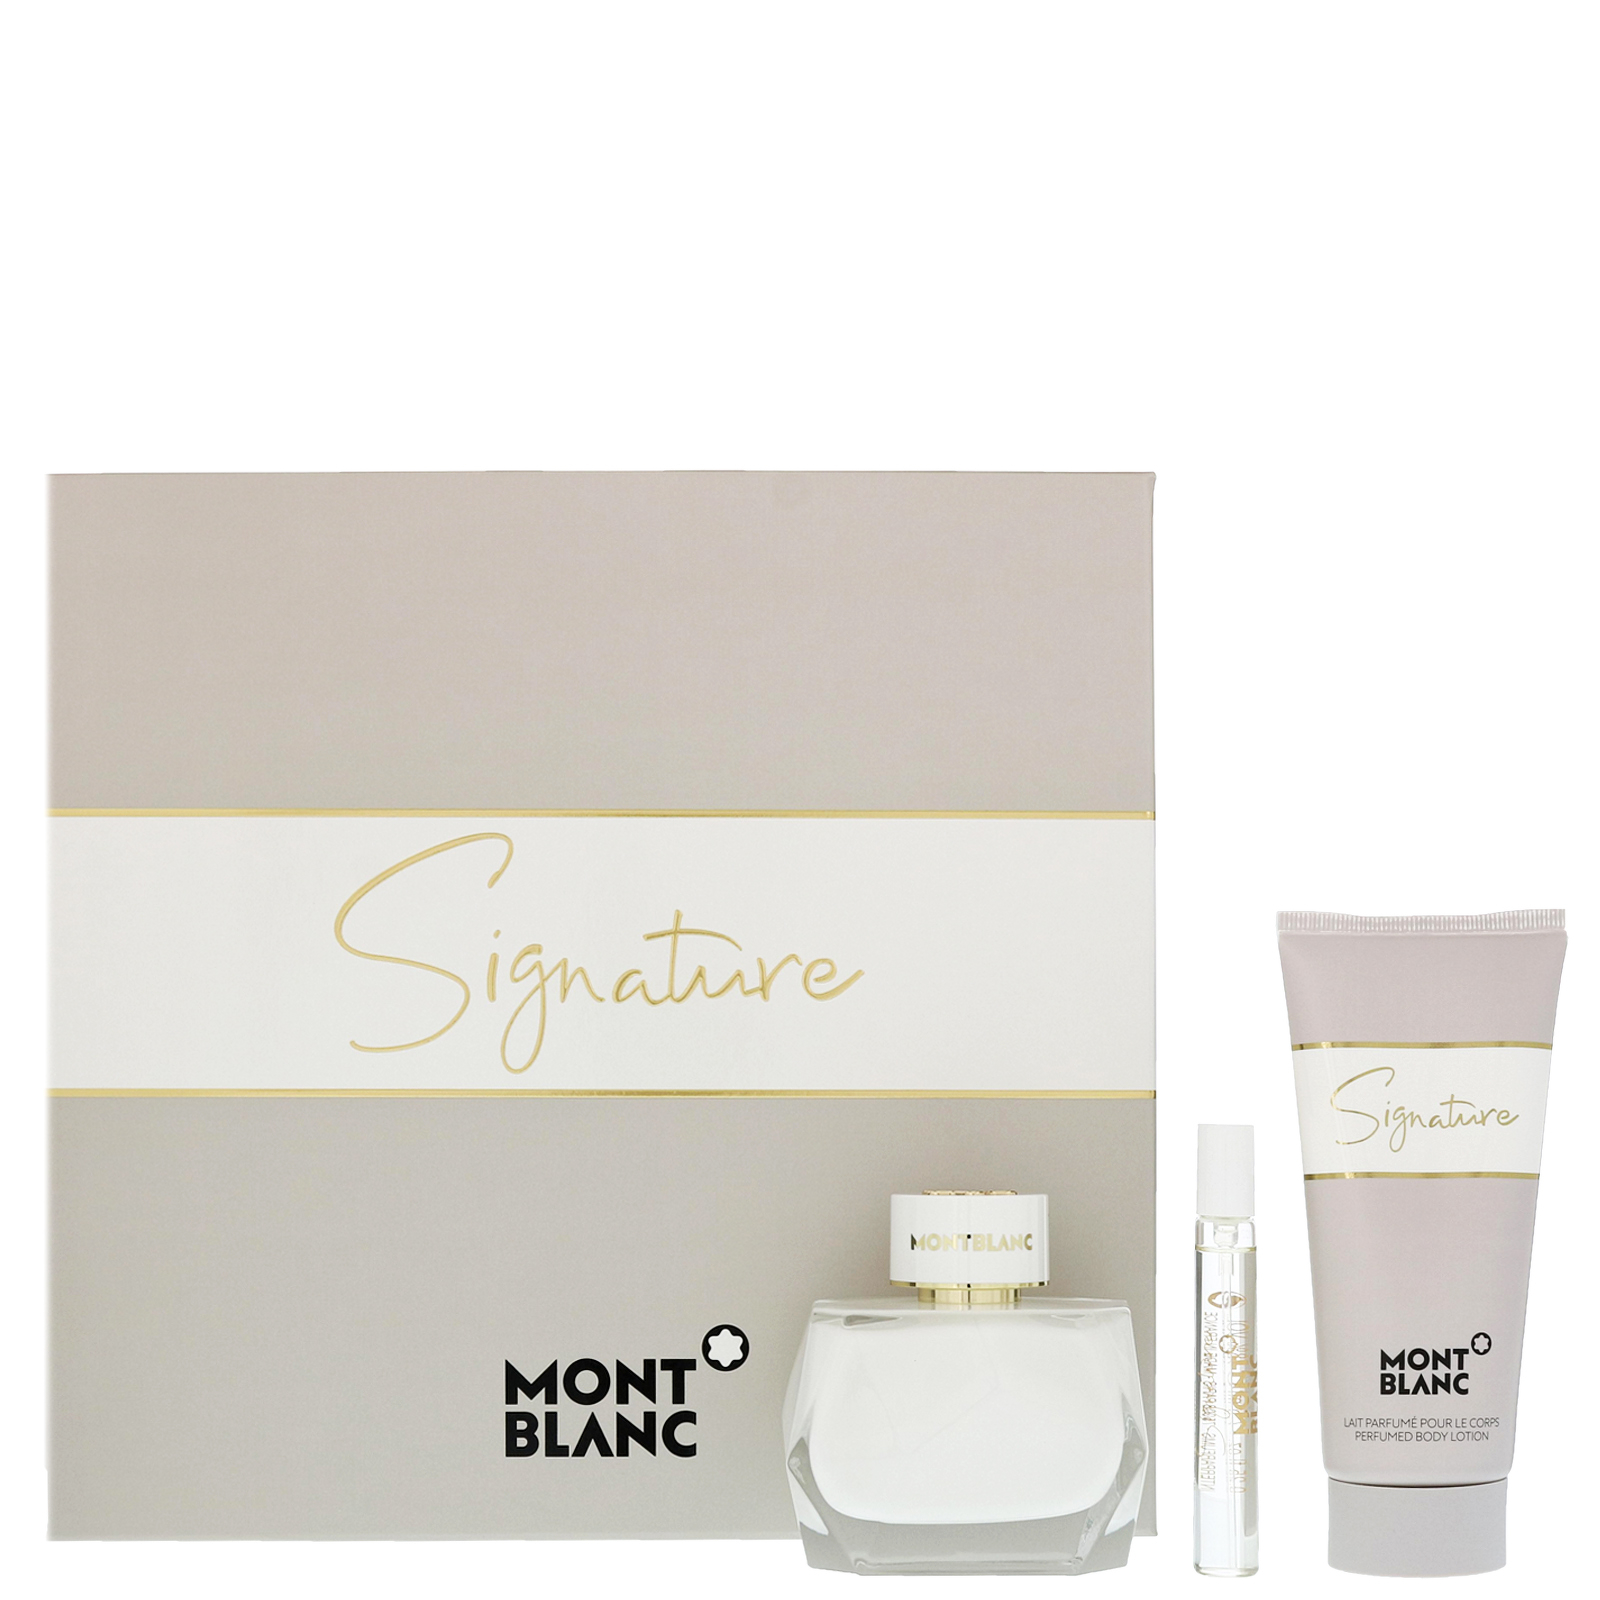 Montblanc Signature Eau de Parfum Spray 90ml Gift Set